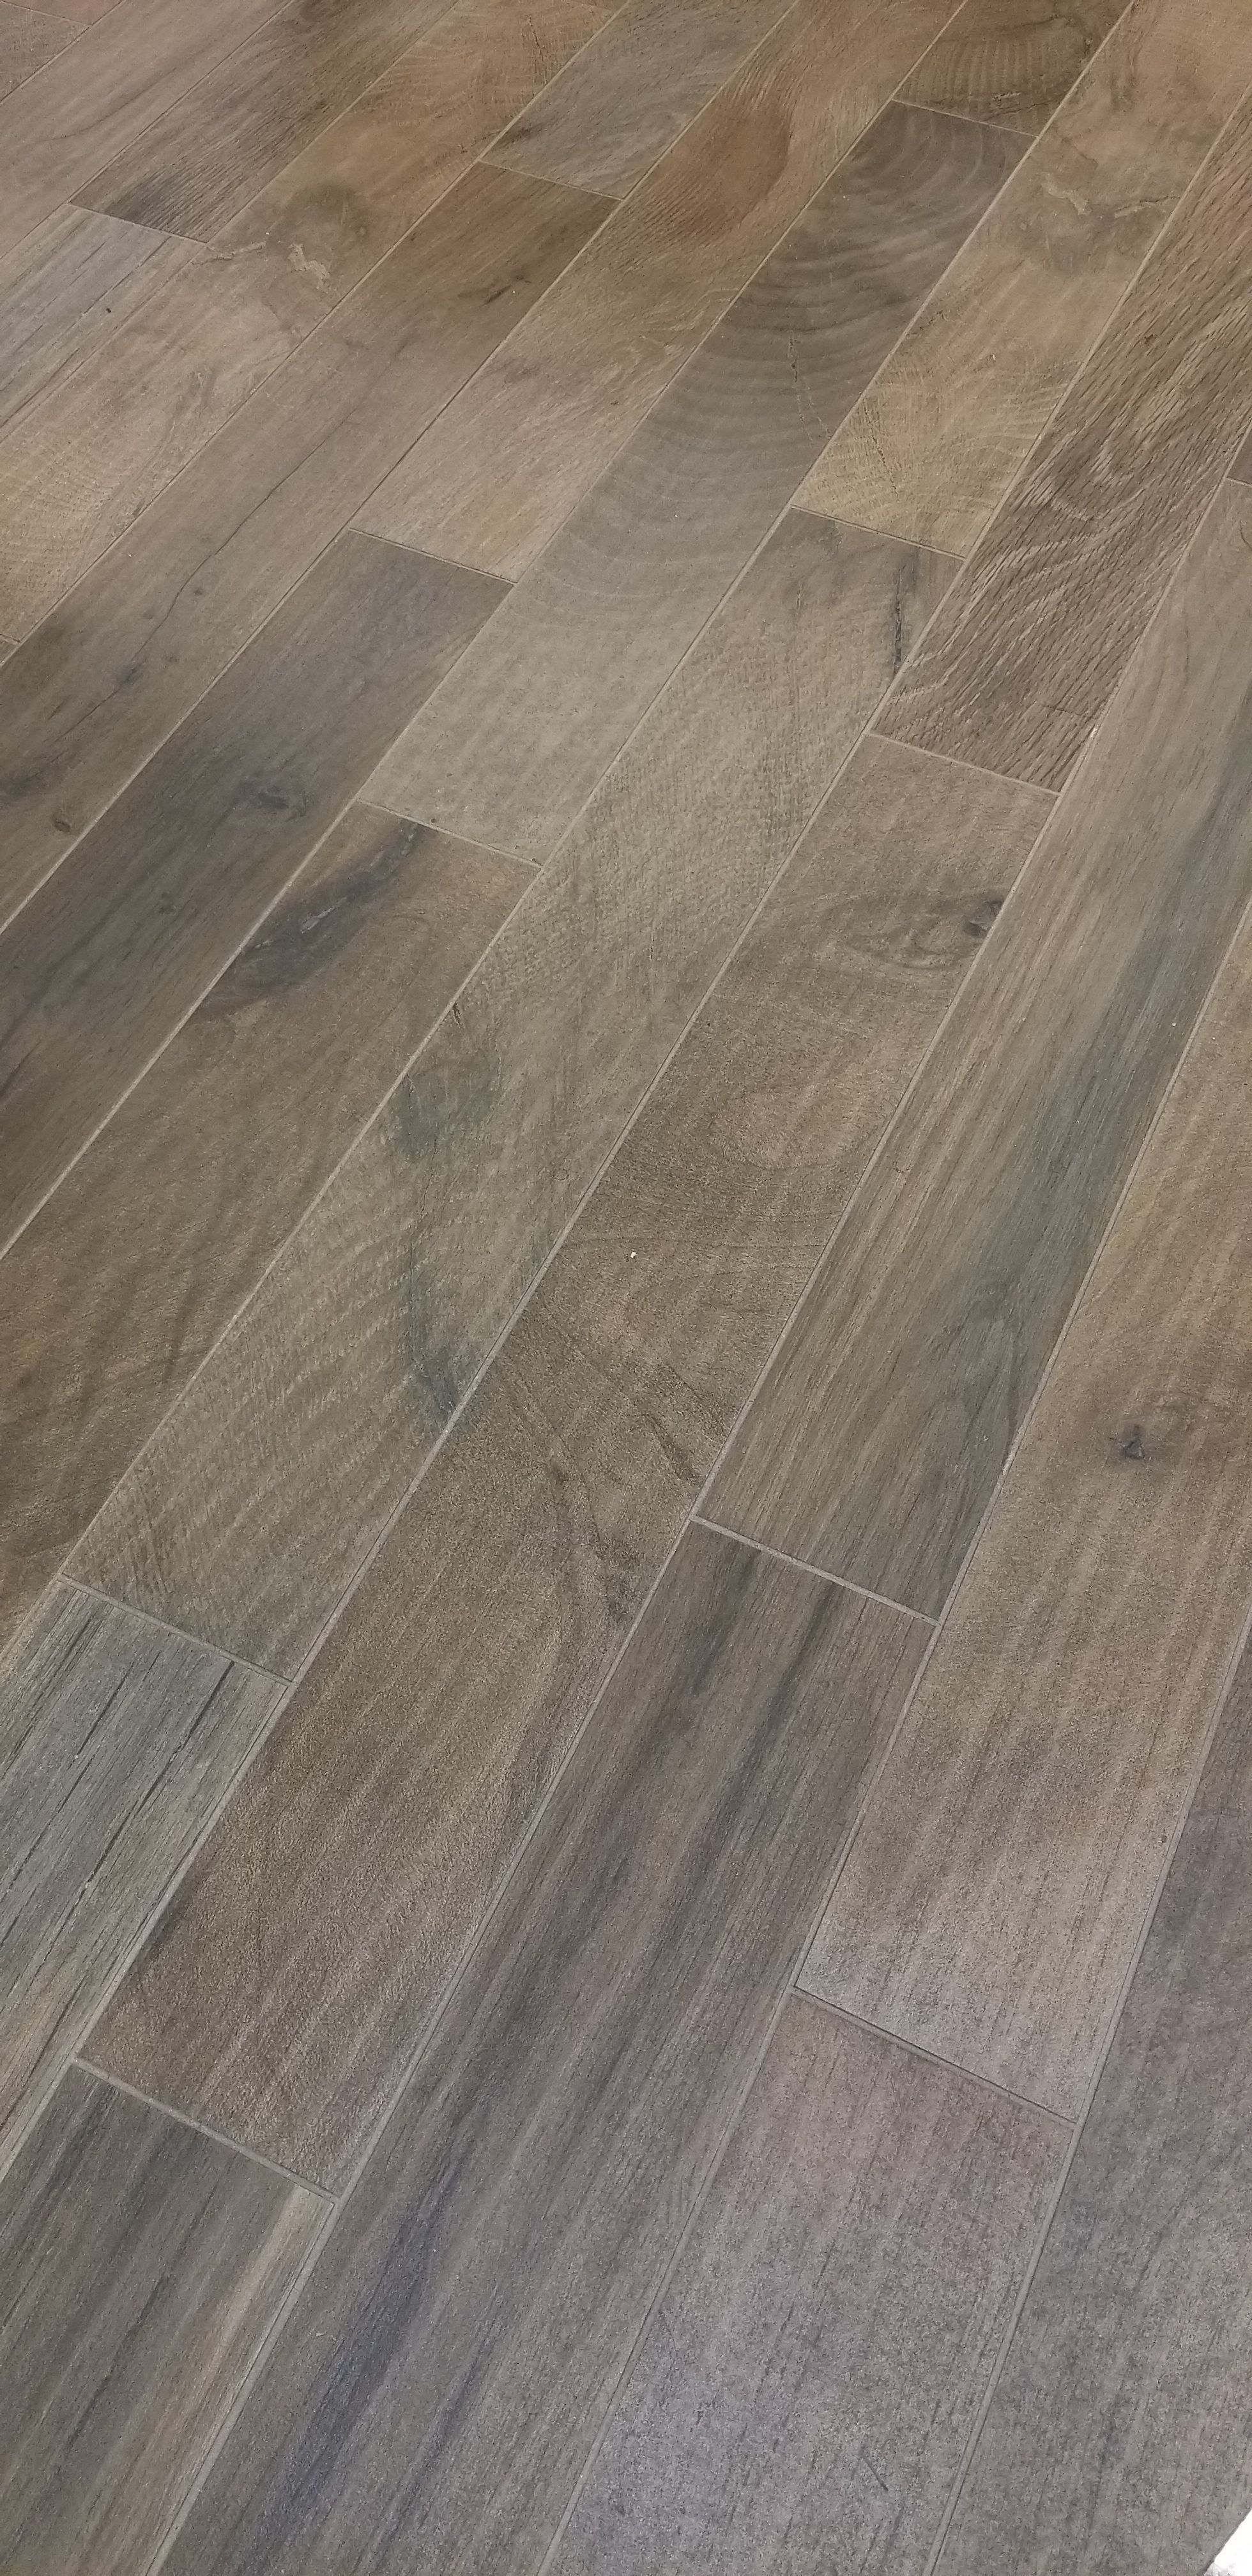 Straight From The Showroom Floor One Of Our Favorite Wood Look